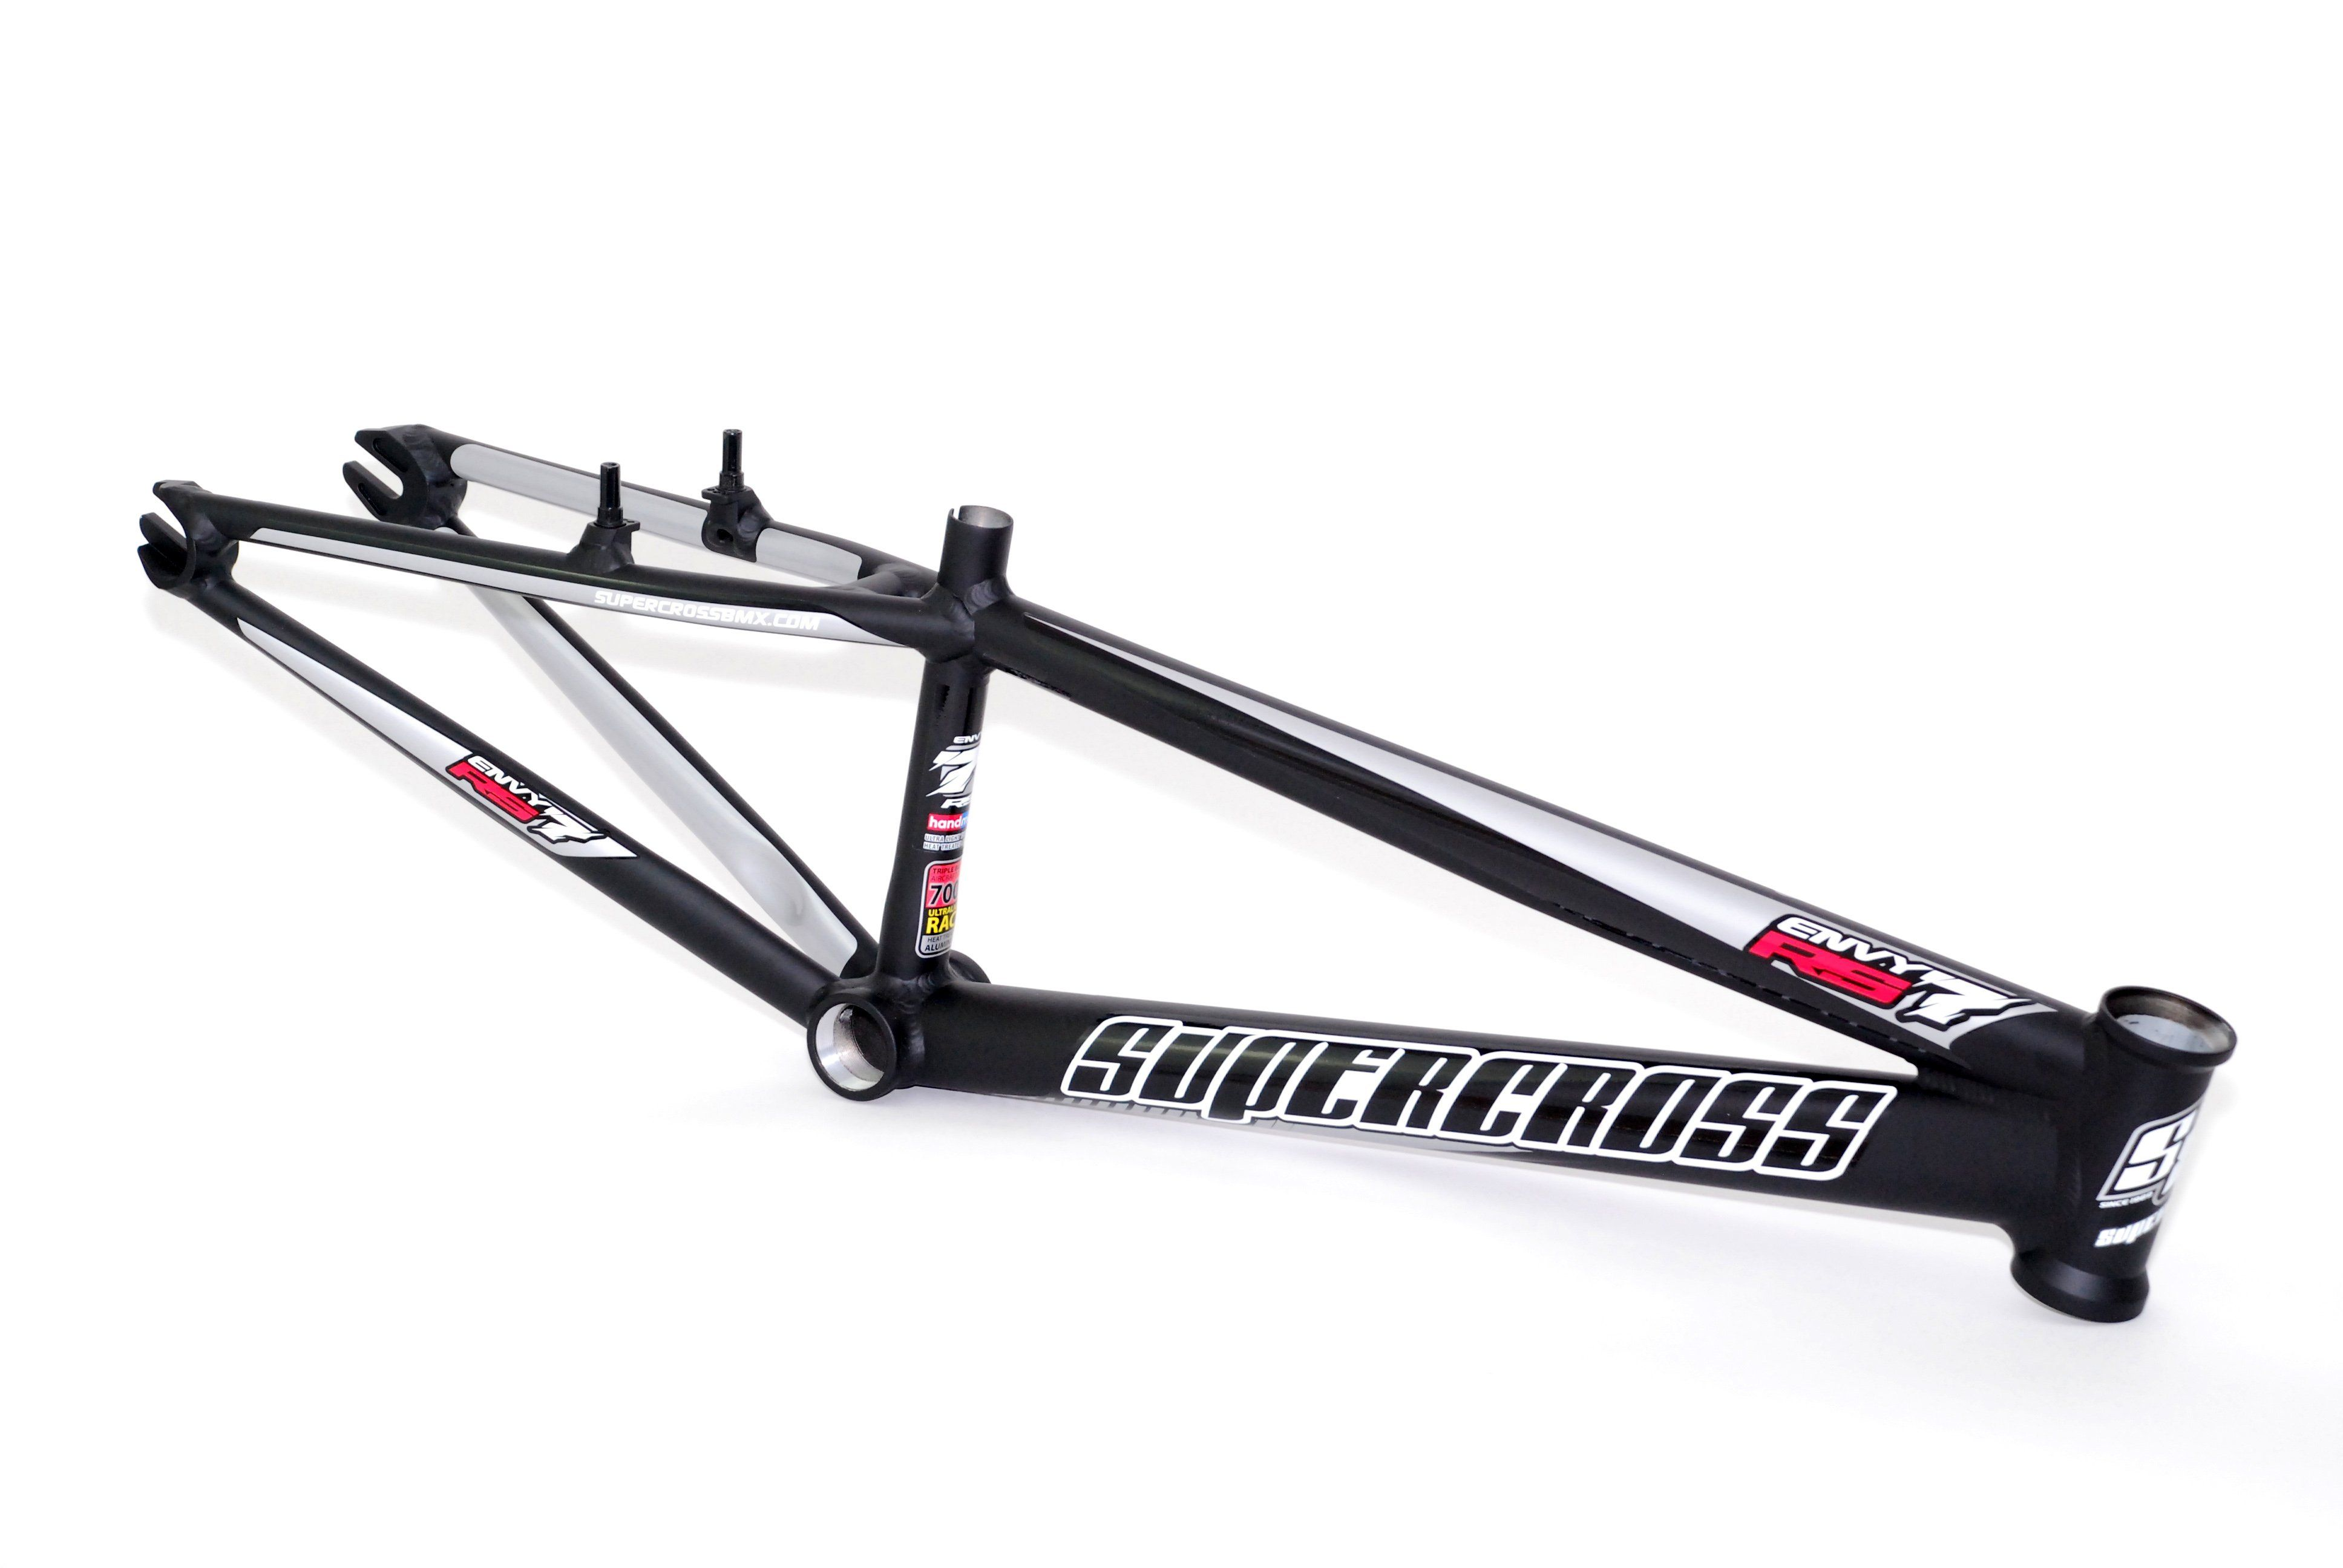 The ENVY Rs7 Triple Butted Aluminum Race Frame   BMX, Envy and Products